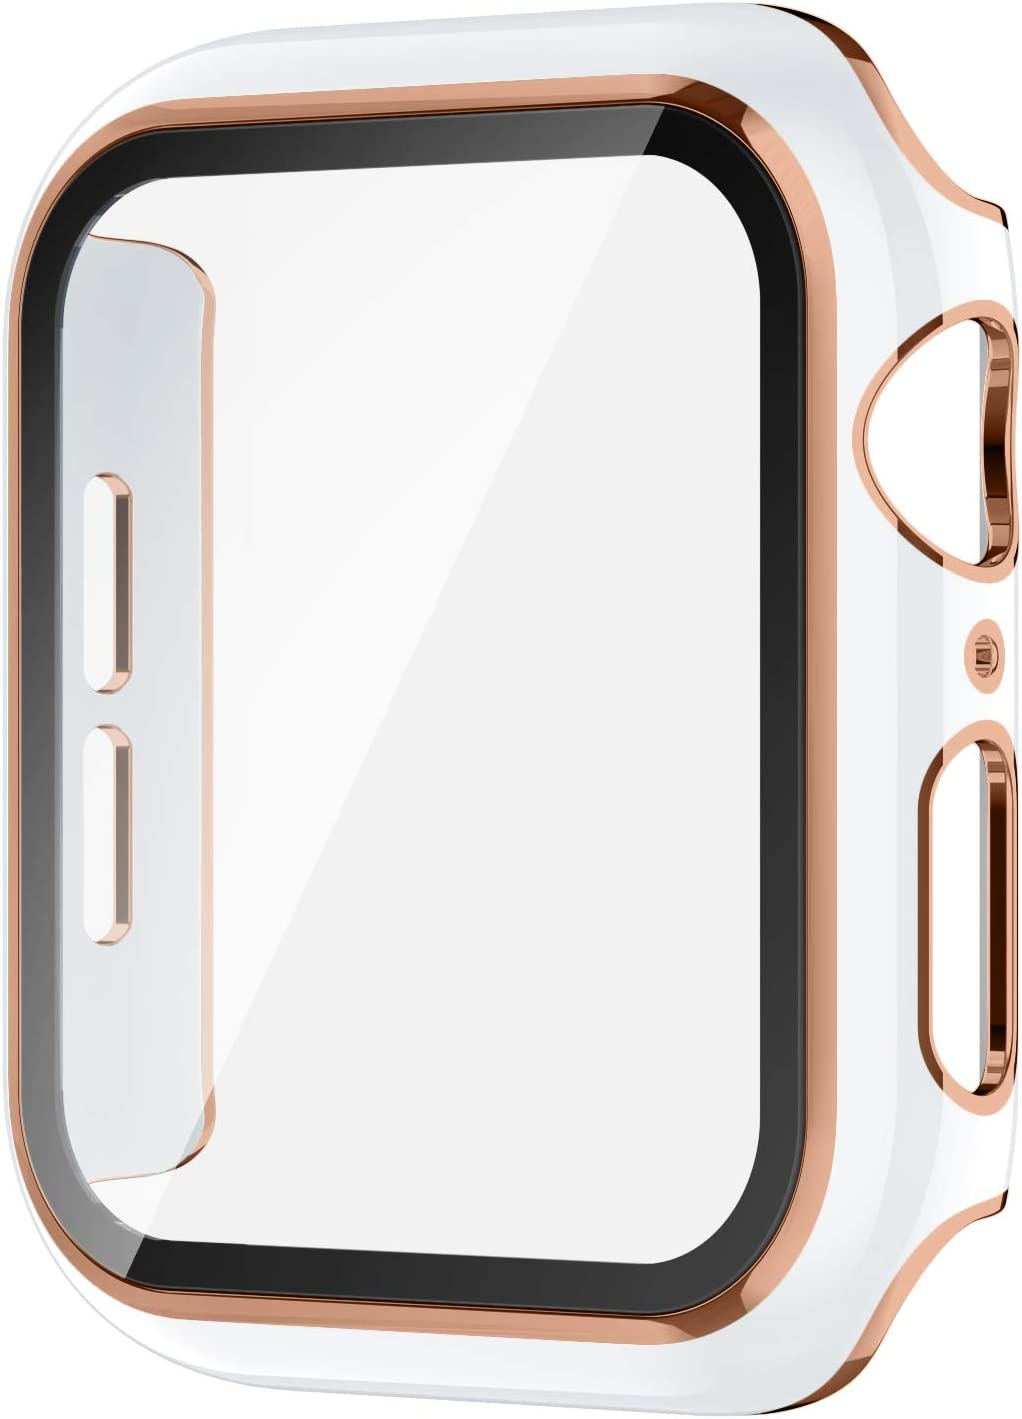 AVIDDA Case Compatible Apple Watch 38mm Built-in Tempered Glass Screen Protector, Rose Gold Edge White Bumper Full Coverage HD Clear Protective Film Cover for Women Men iWatch 38mm Series 3/2/1